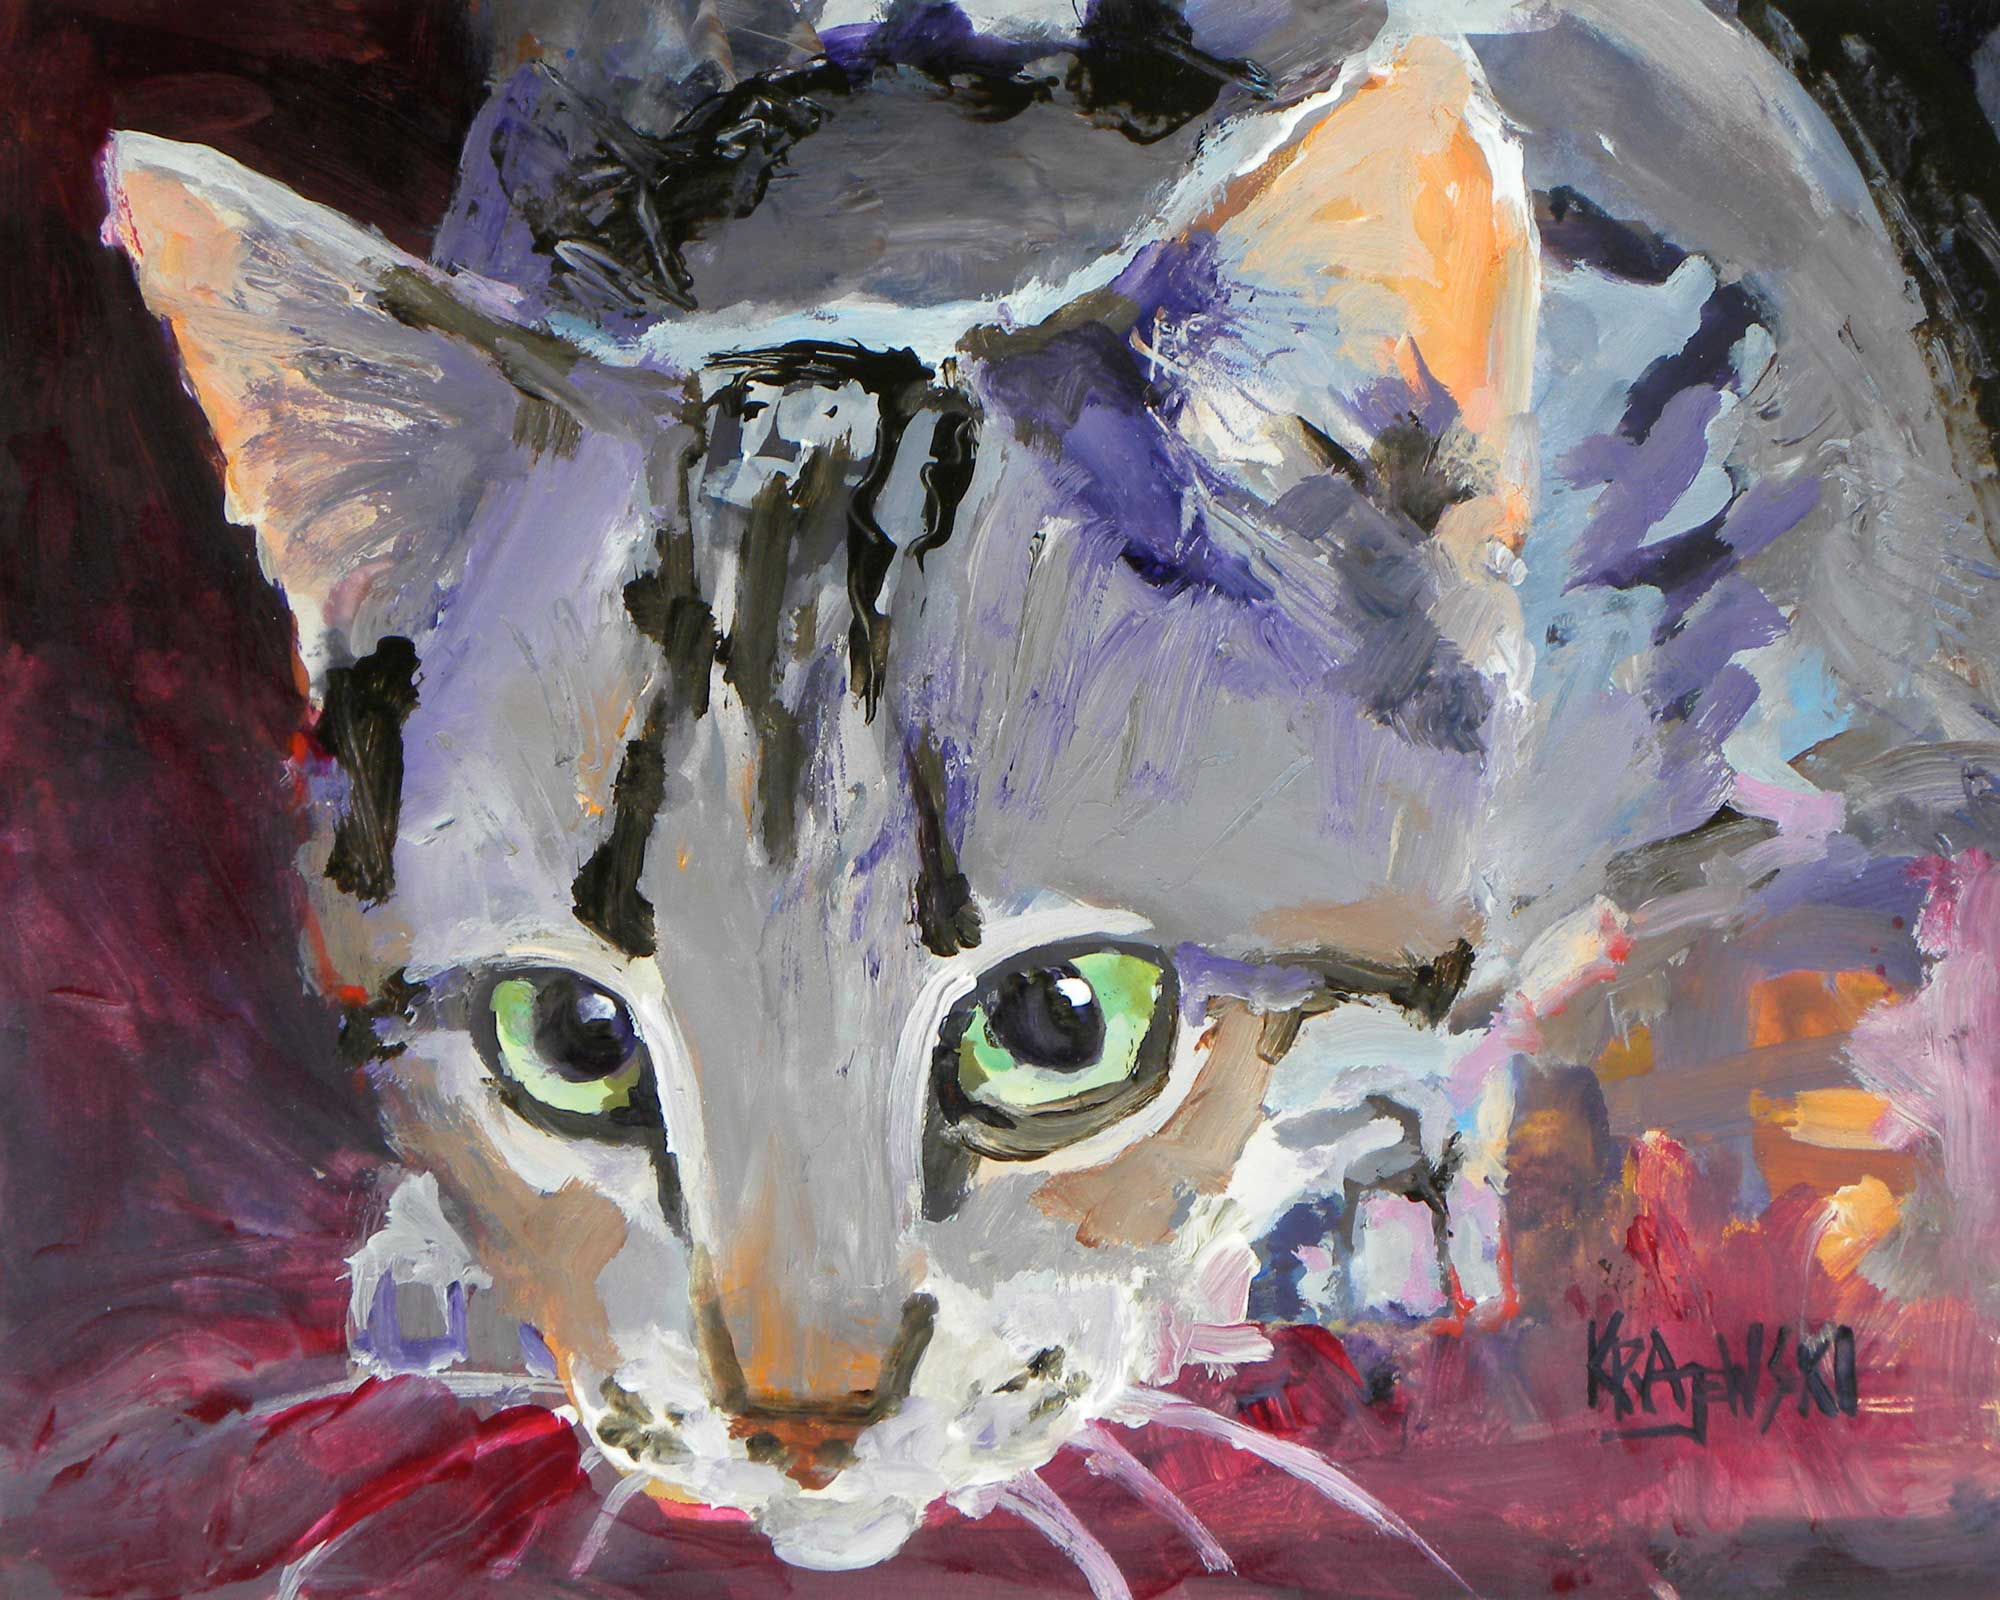 Tabby Cat 082310 - Ron Krajewski Art